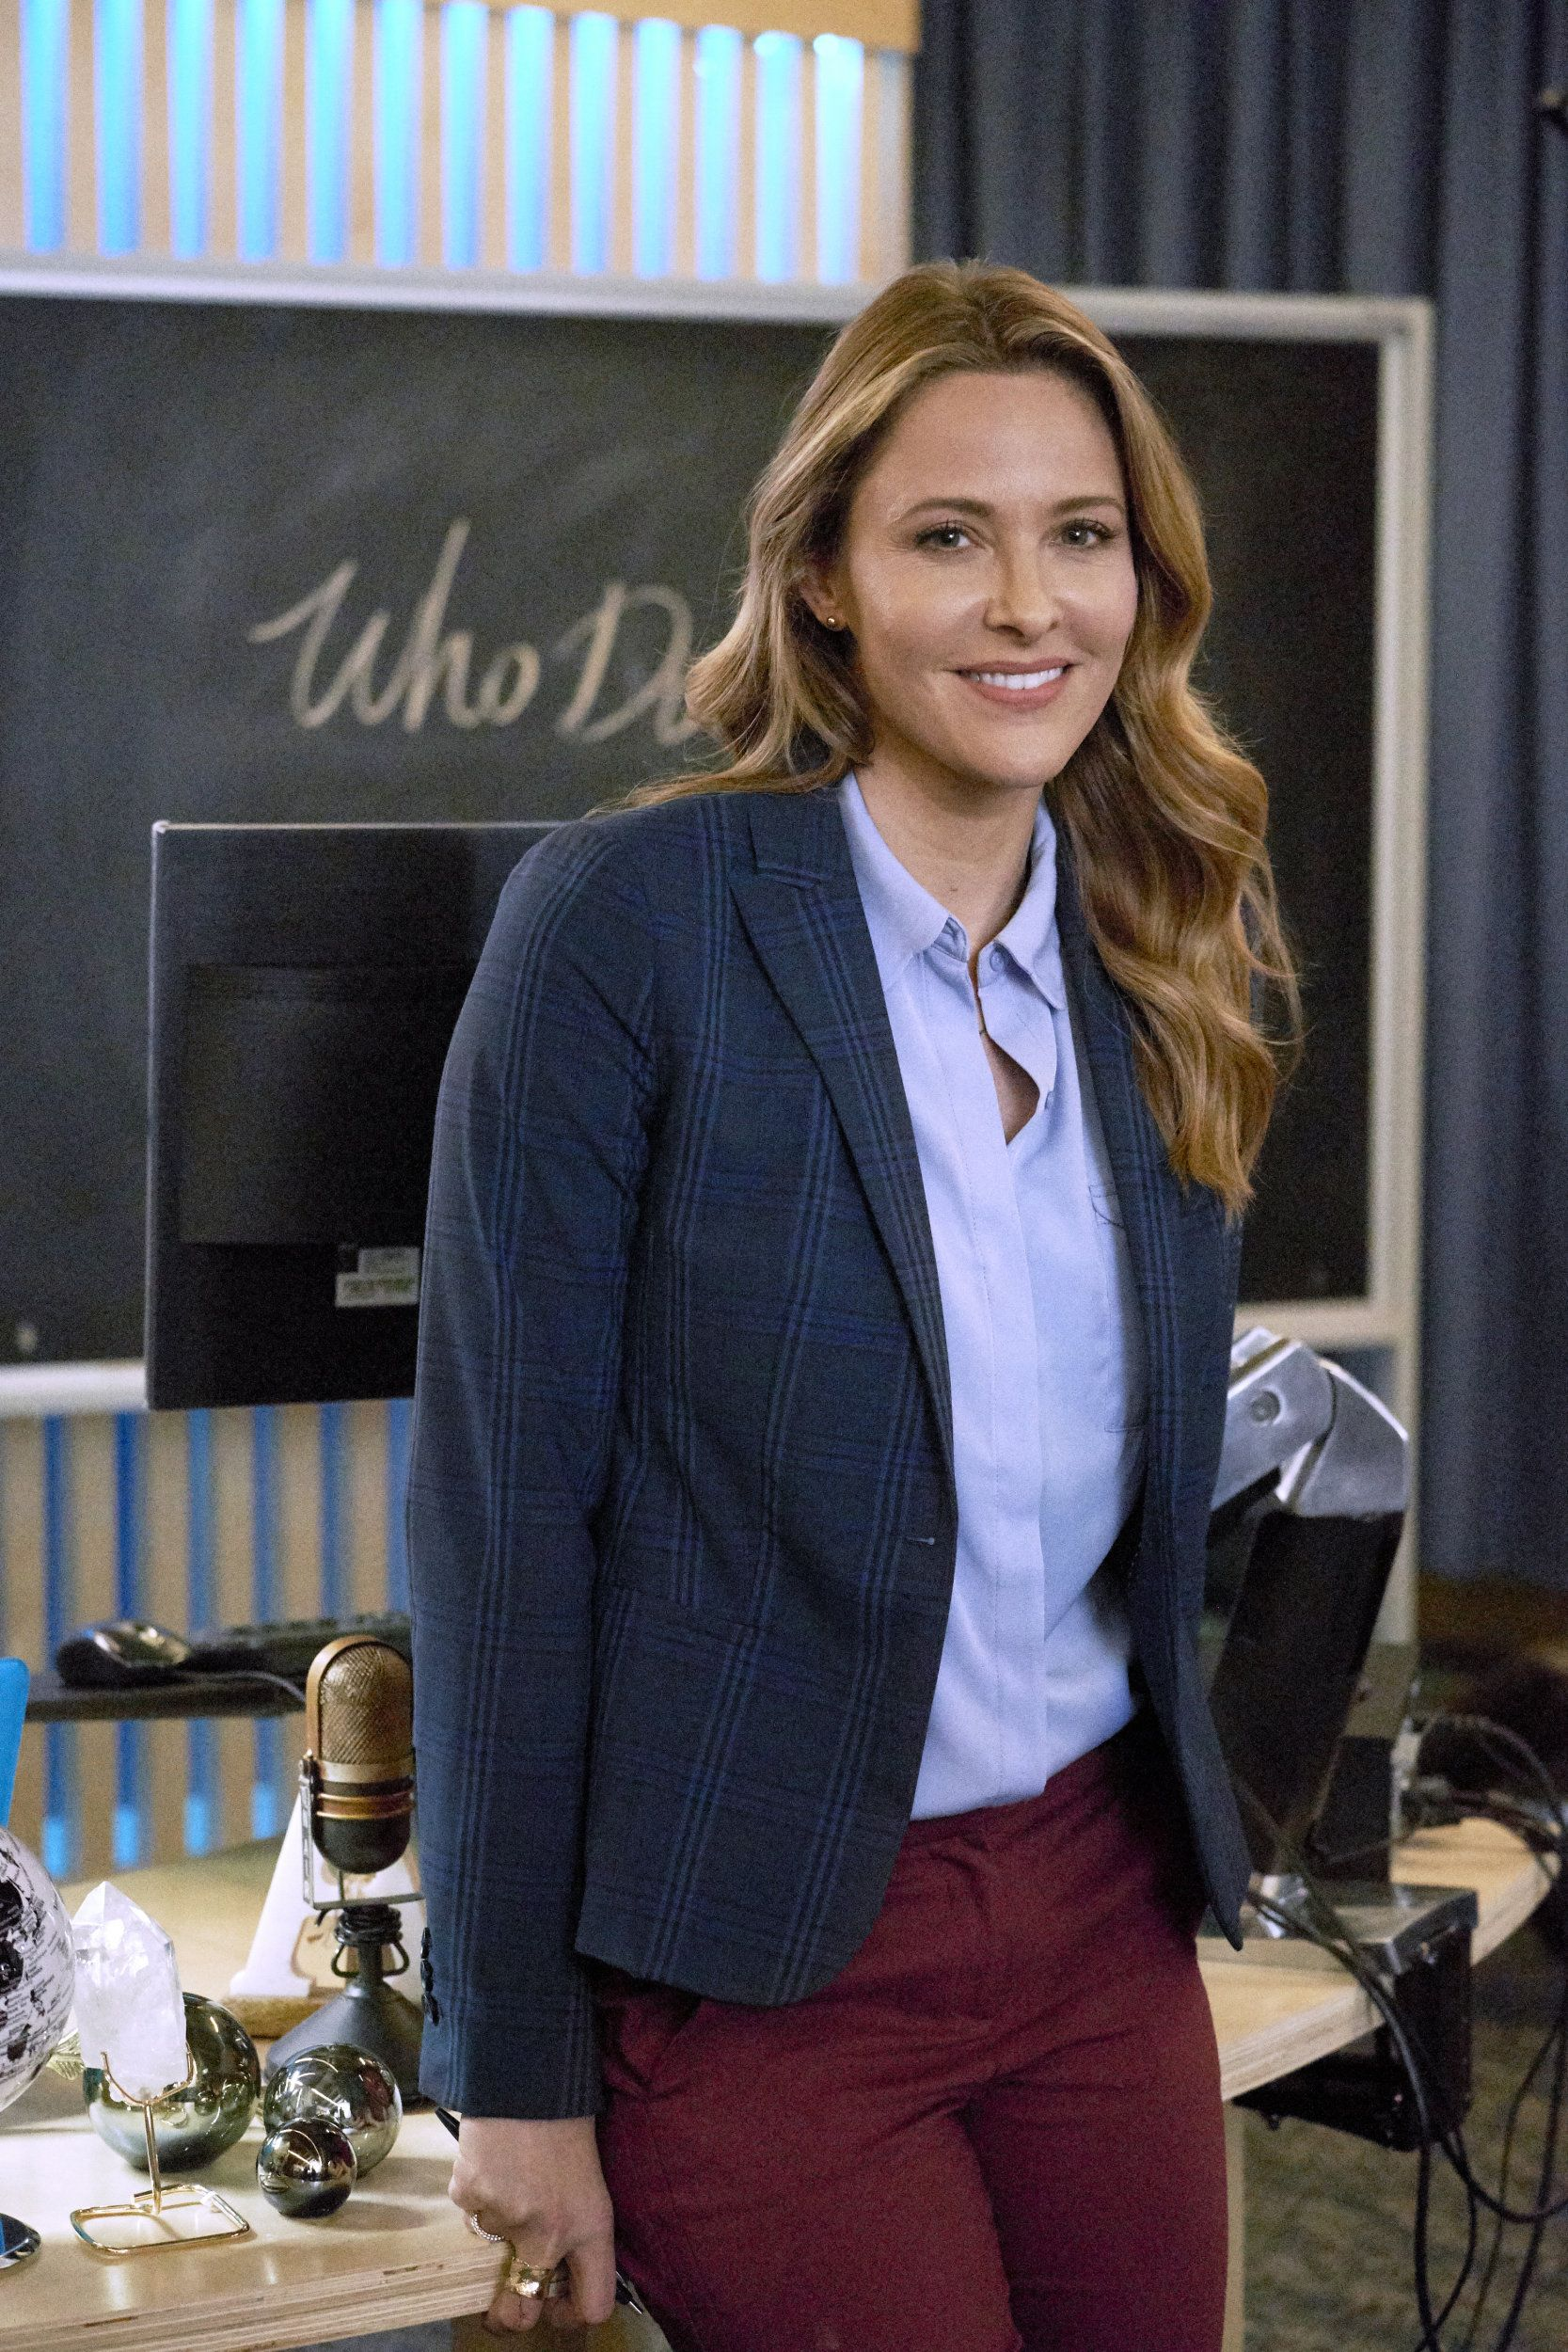 Find Out More About The Cast Of The Hallmark Movies Mysteries Movie Mystery 101 Starring Jill Wagner And Kristoffe Jill Wagner Movies Outfit Career Outfits